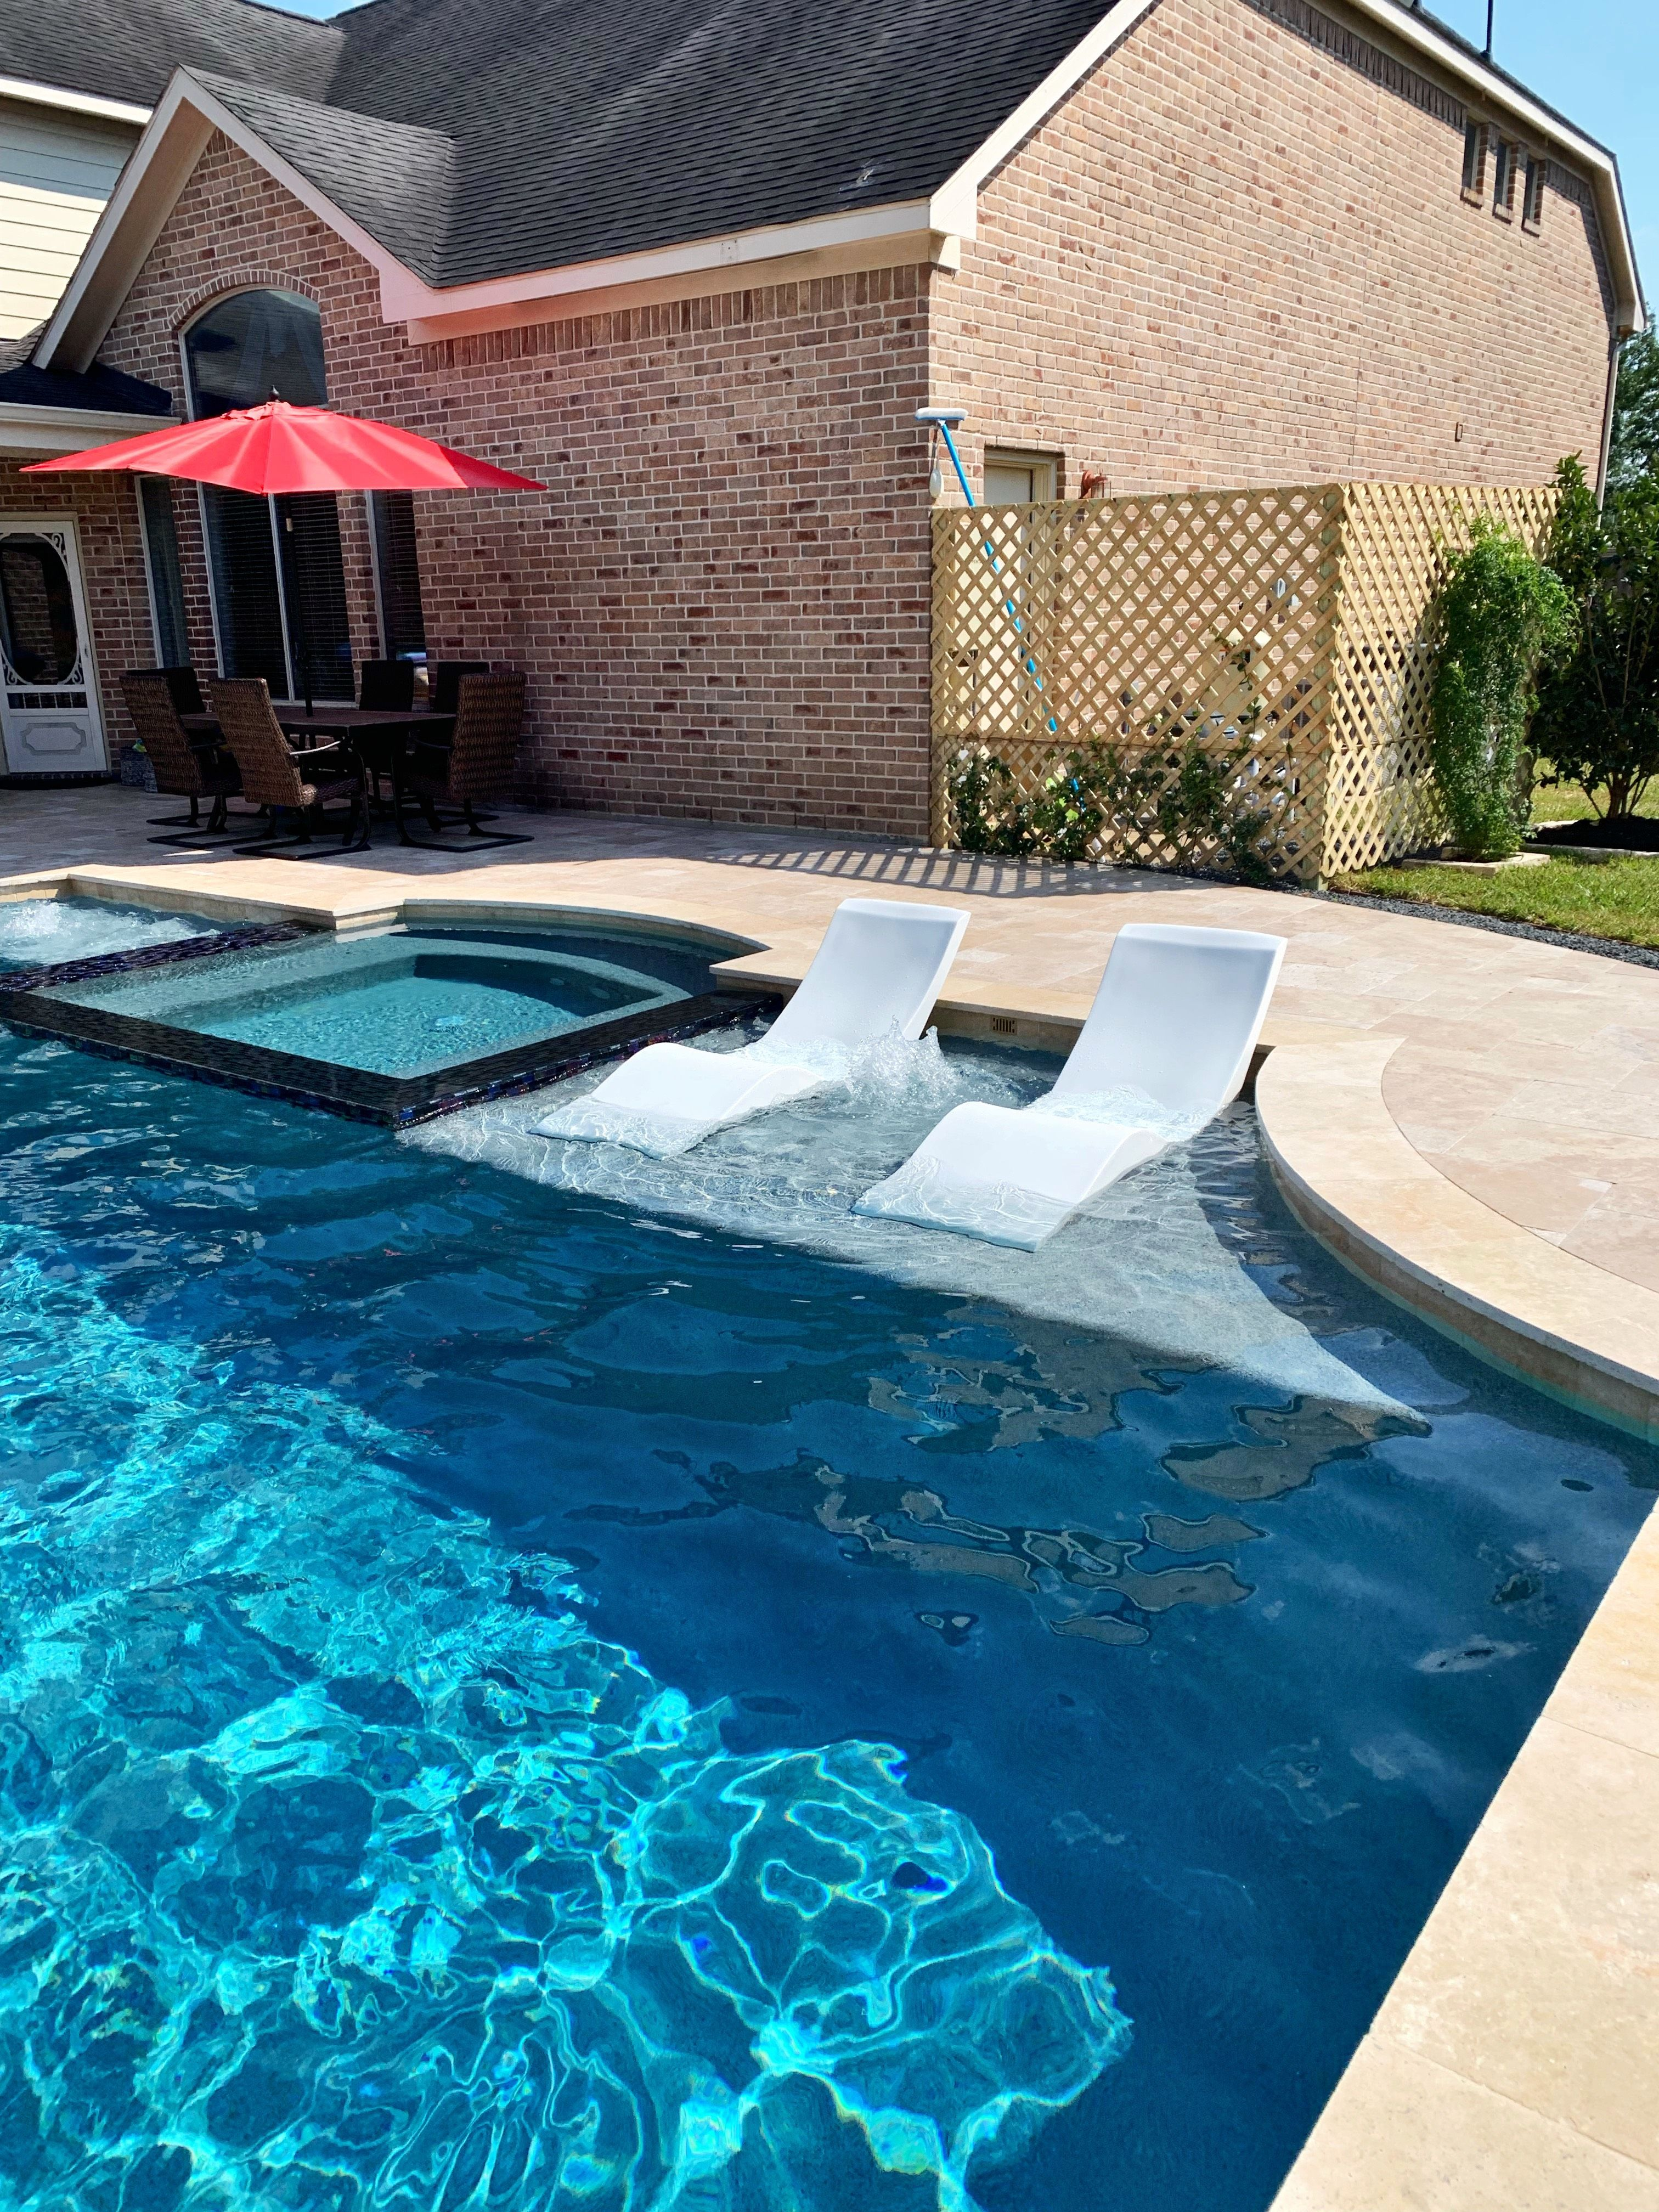 Outdoor Natural Gas Fire Pit Table, In Pool Chaise Lounge Chairs In Texas Pool Chaise Pool Chaise Lounge Rectangle Pool